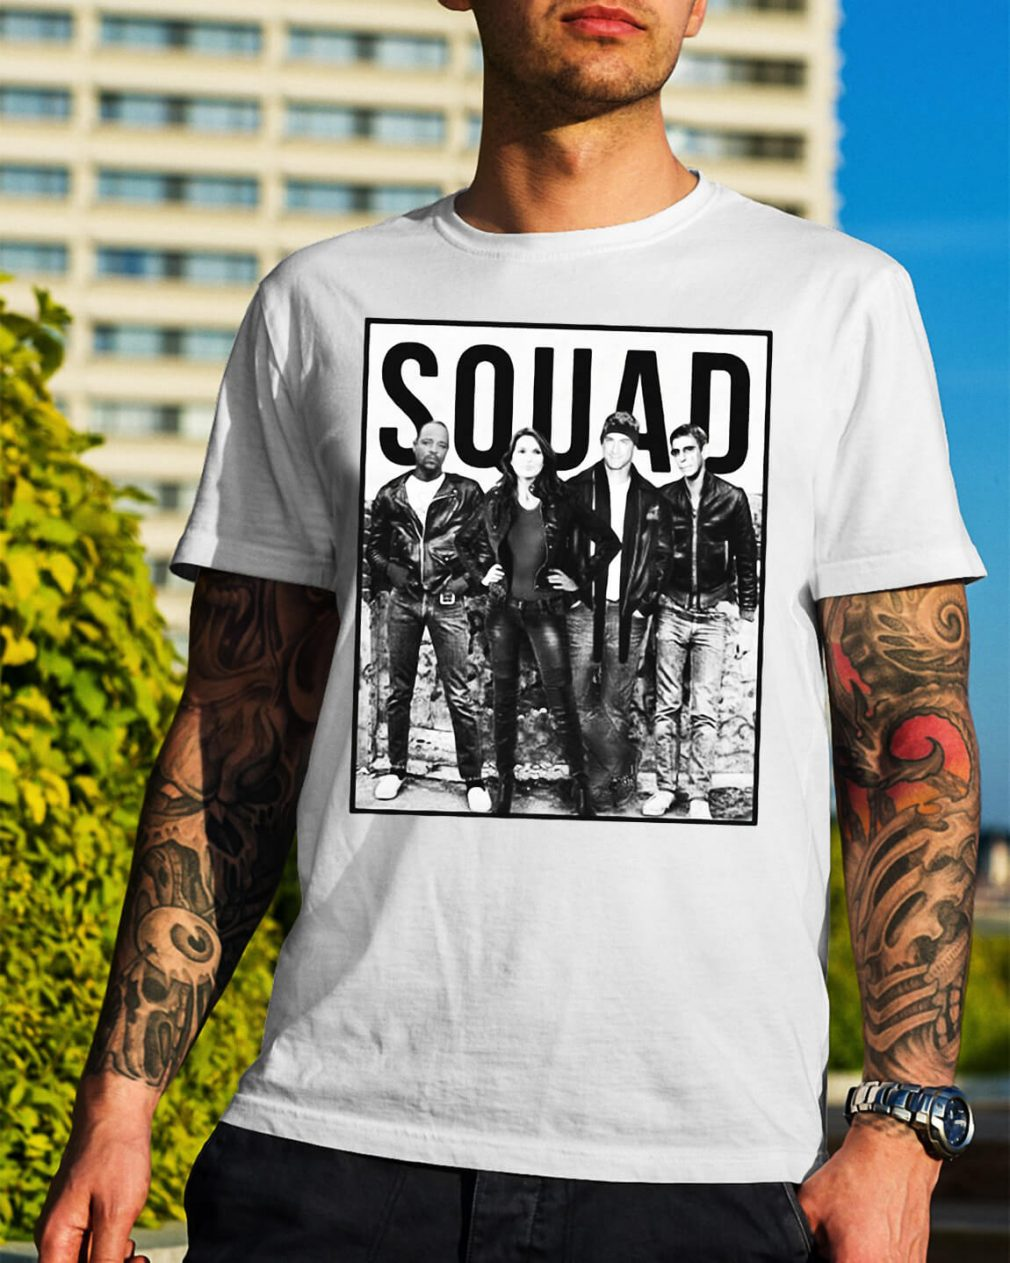 Law and Order Svu squad shirt